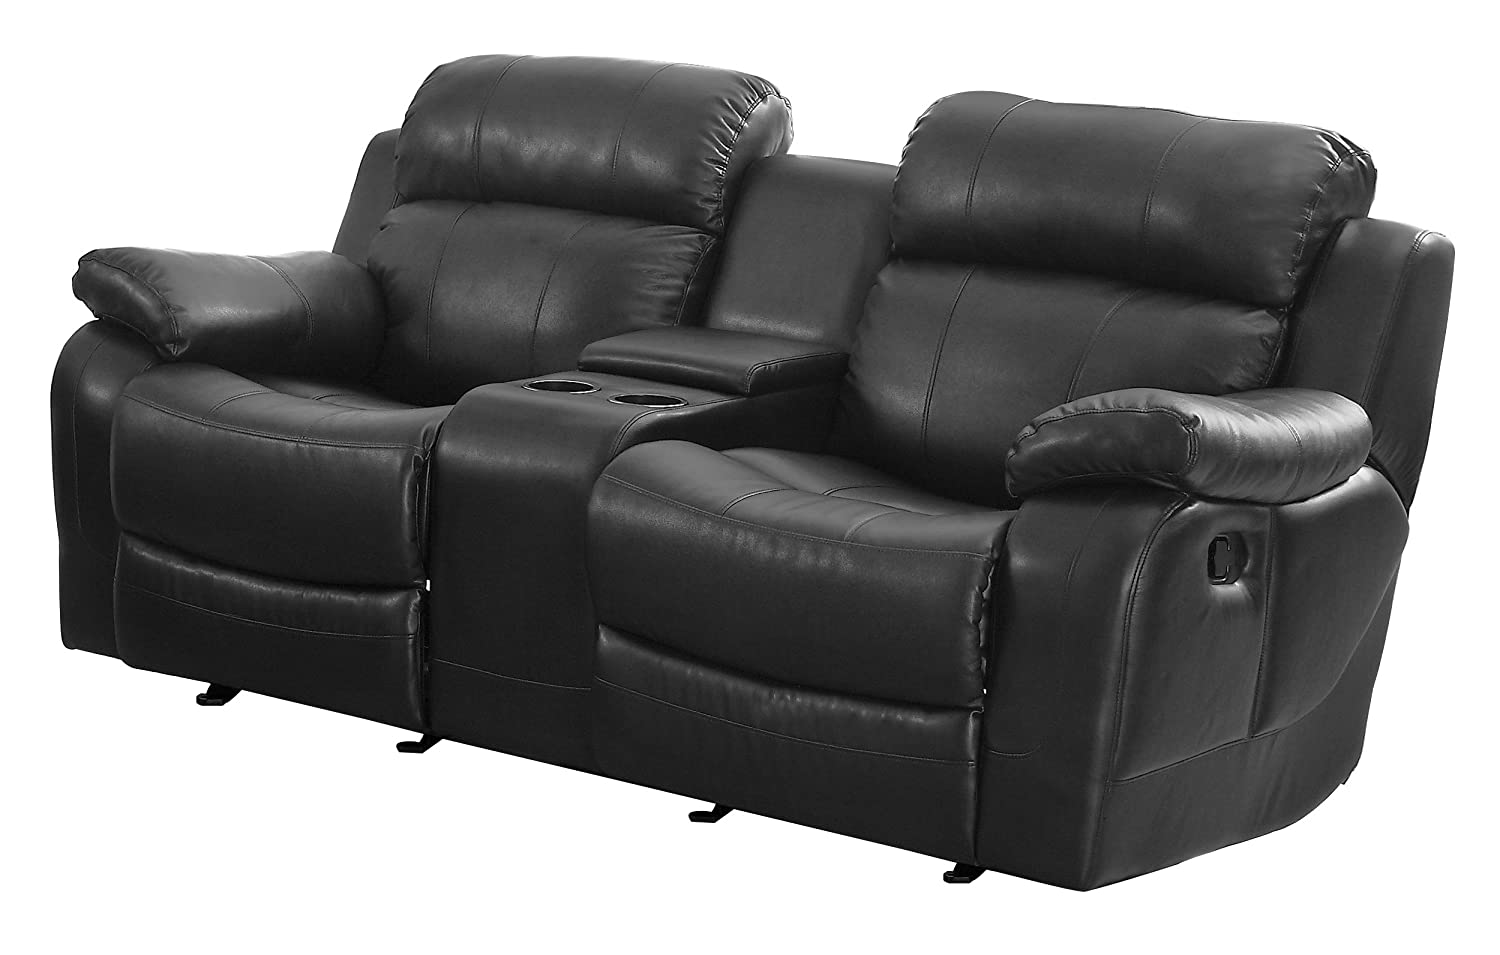 Black Leather Reclining Sofa With Console Hereo Sofa